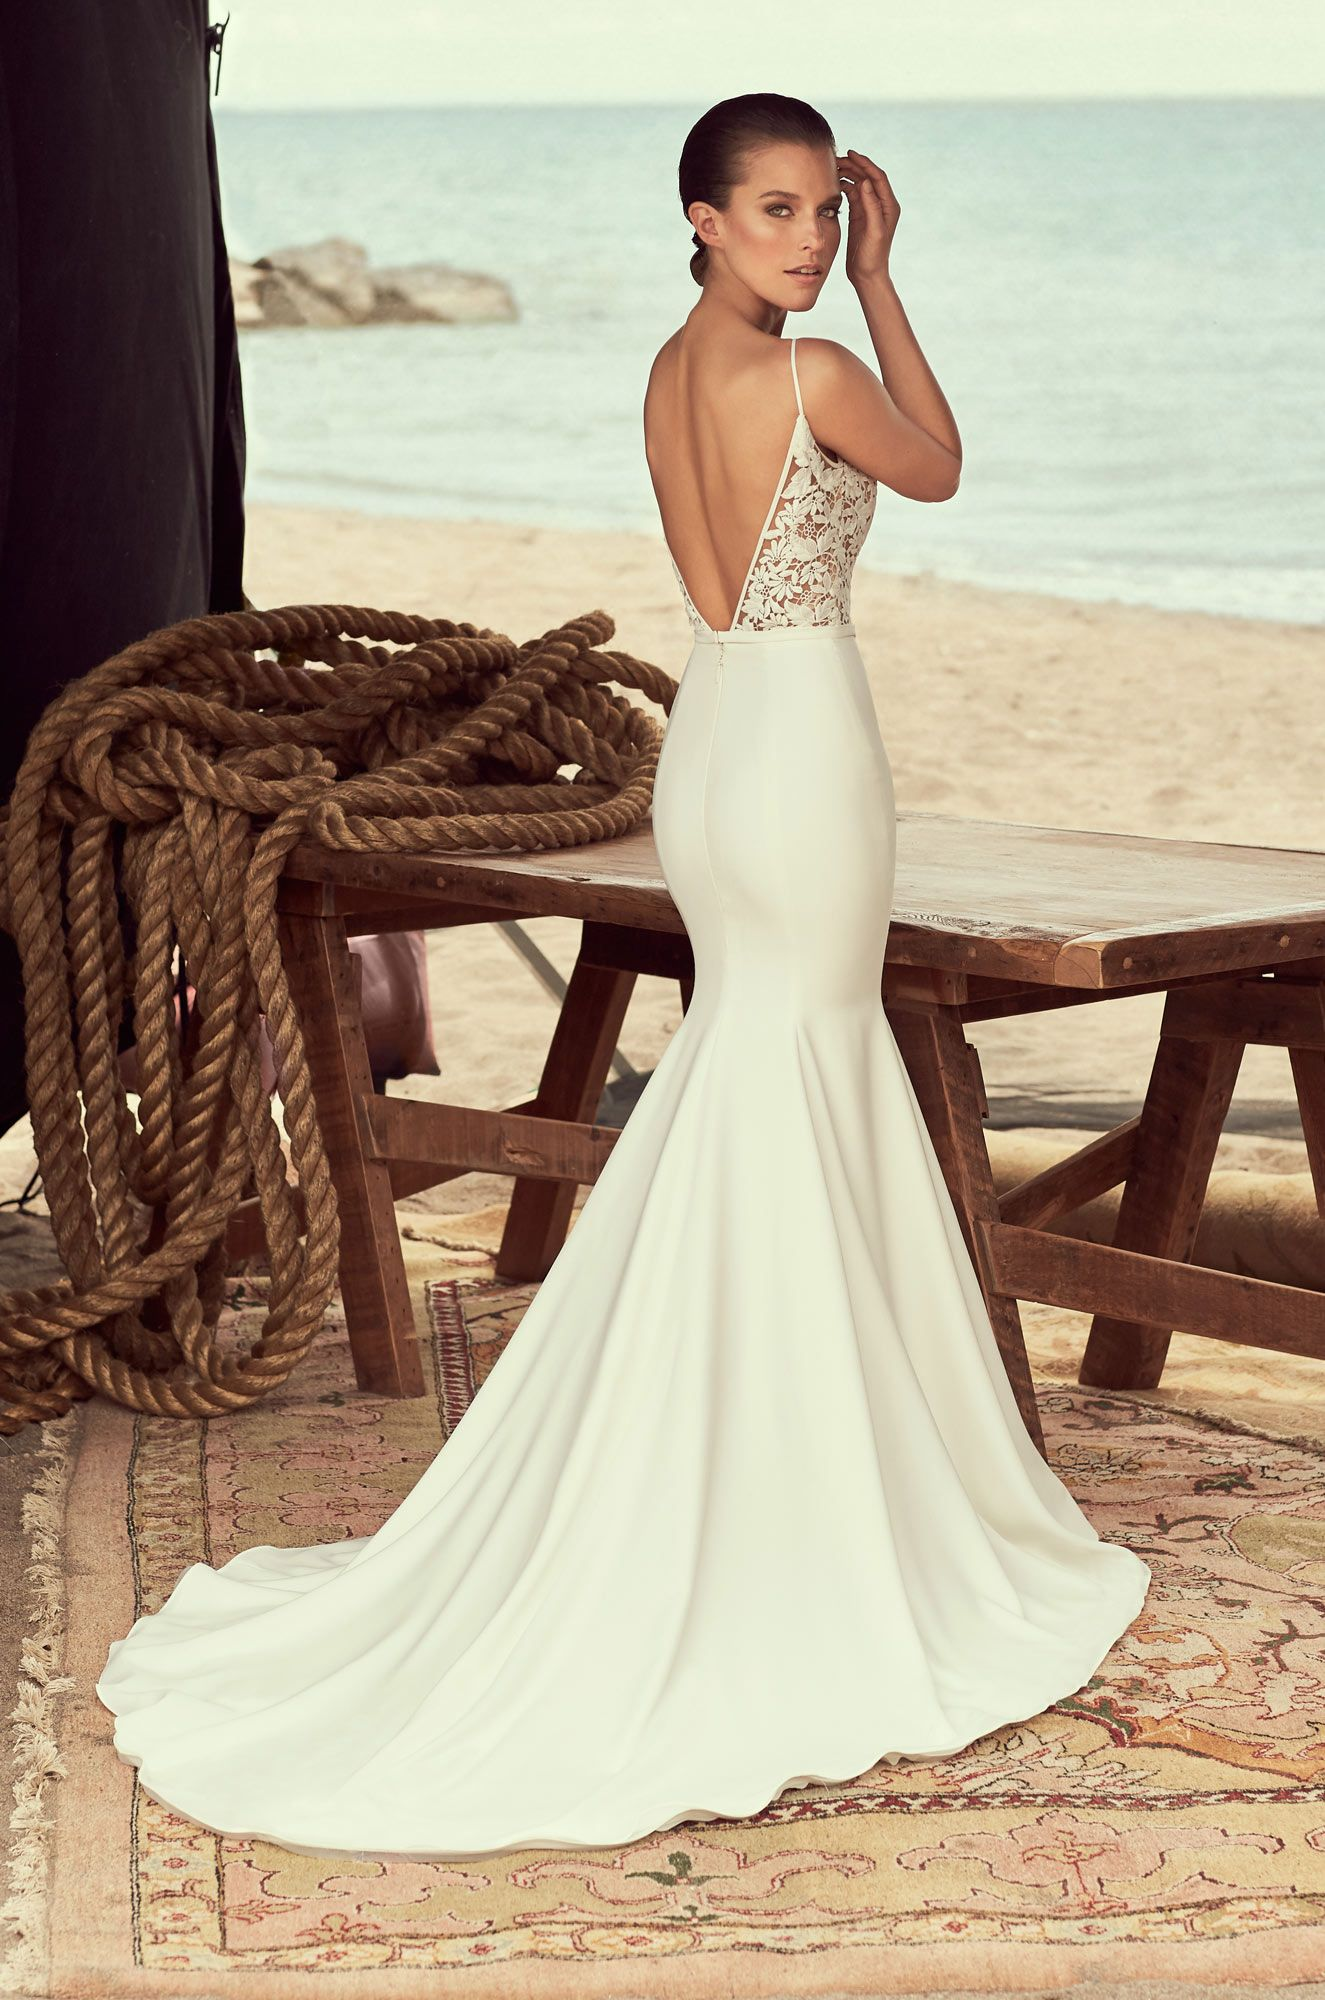 Sheer lace wedding dress style pinterest bodice